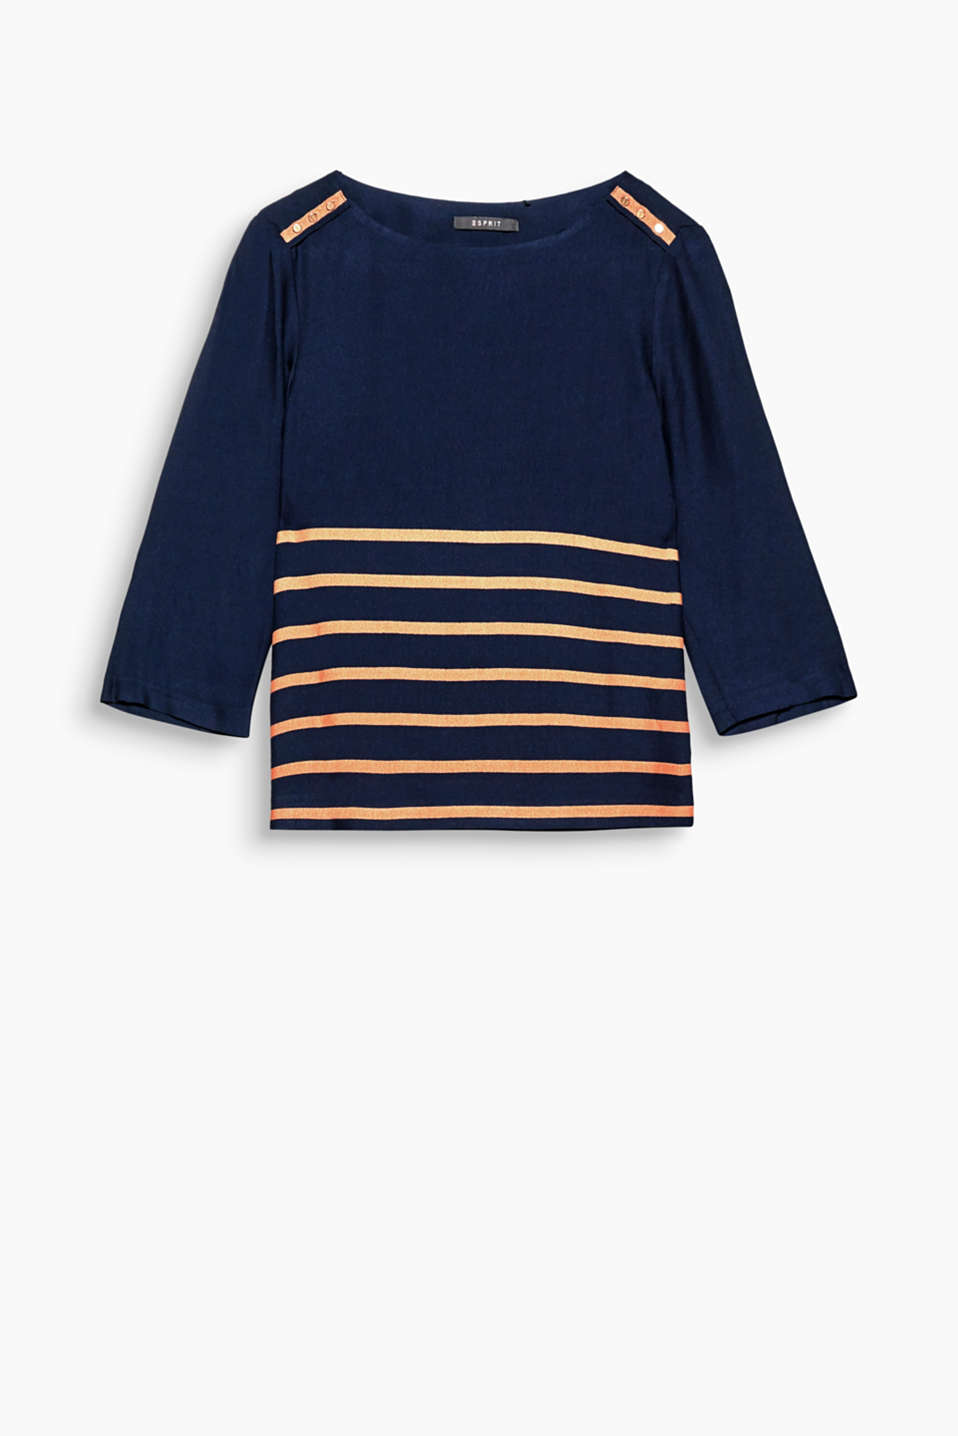 The horizontal glitter stripes and epaulettes make this long sleeve top a genuine one-off.